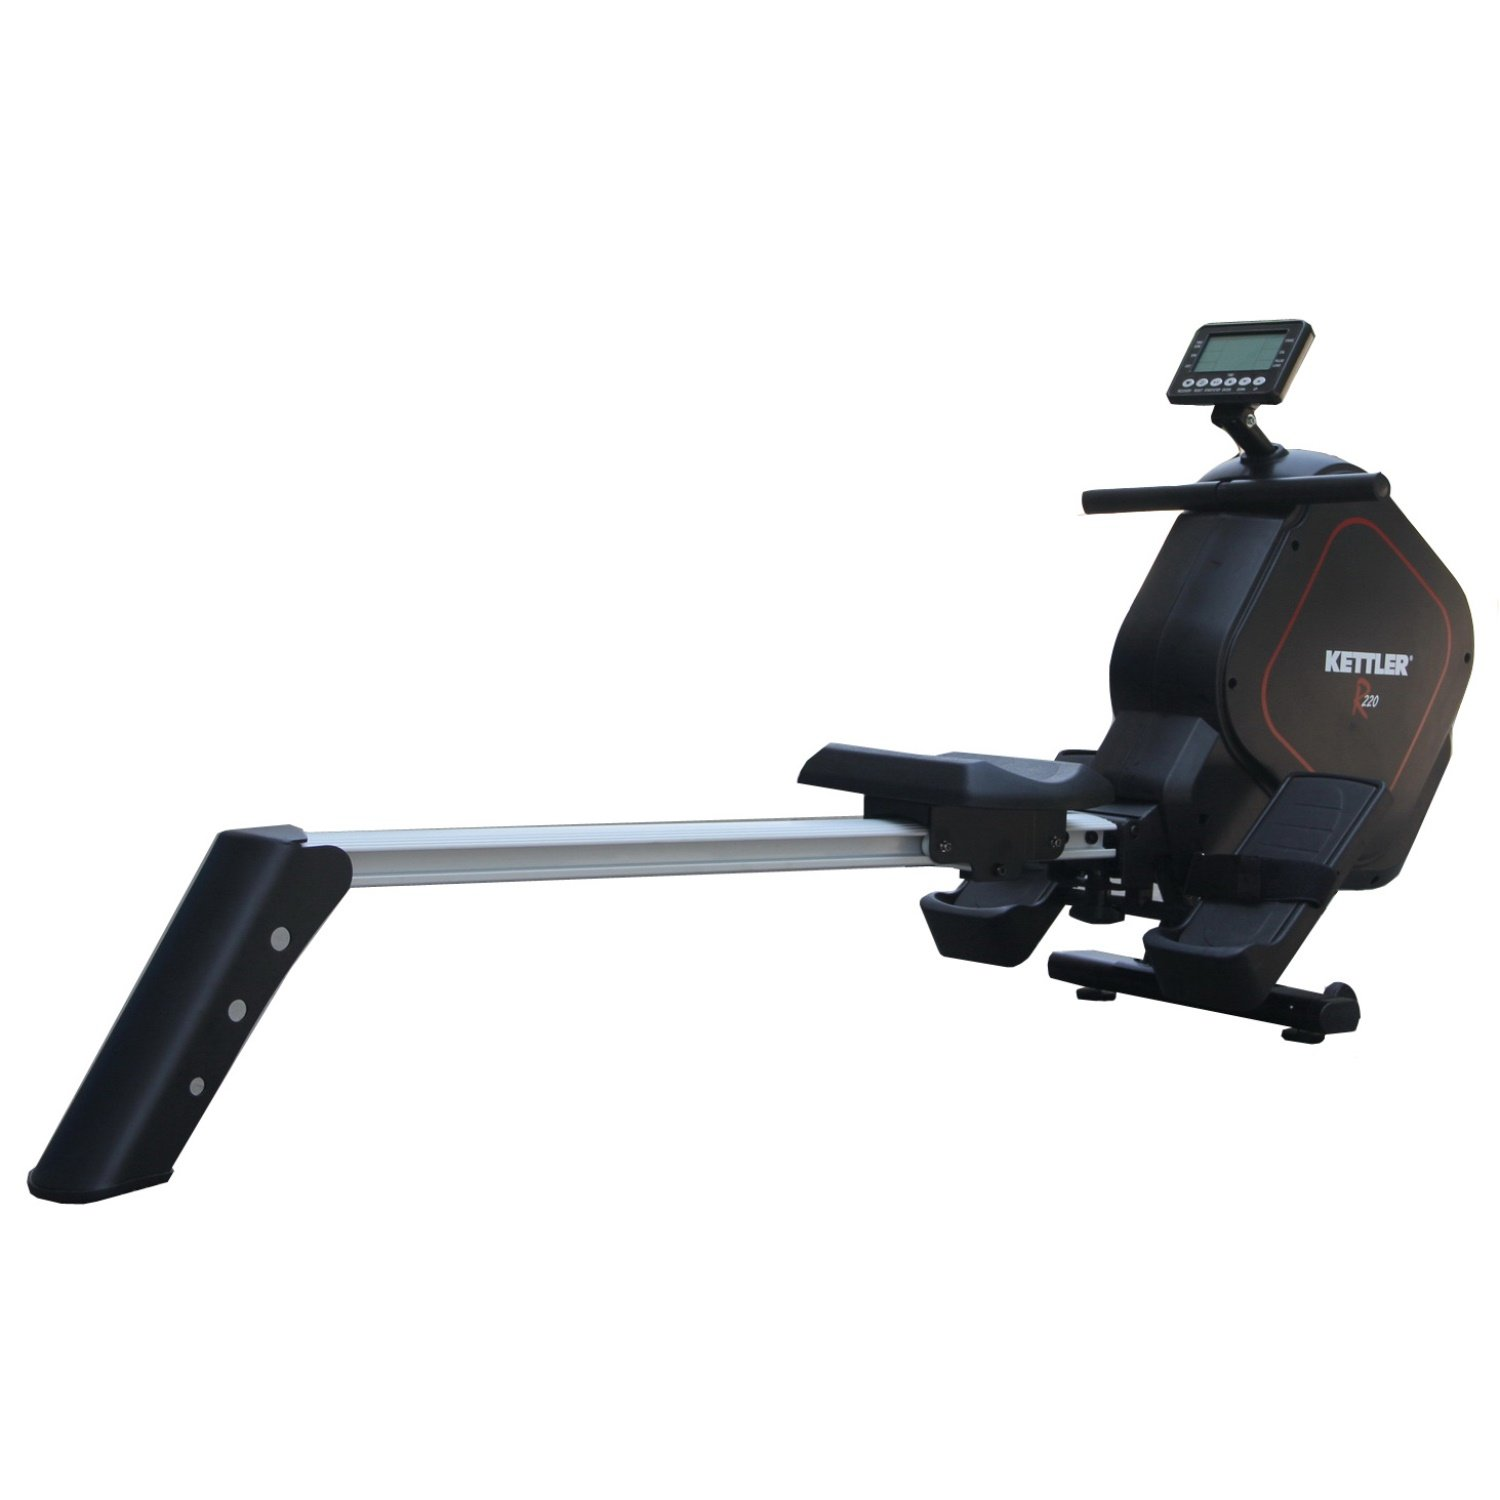 Kettler R220 Programmable Magnetic Rower with 16 Level Adjustable Resistance and Non-Wearing, Balanced Brake System by Kettler Fitness